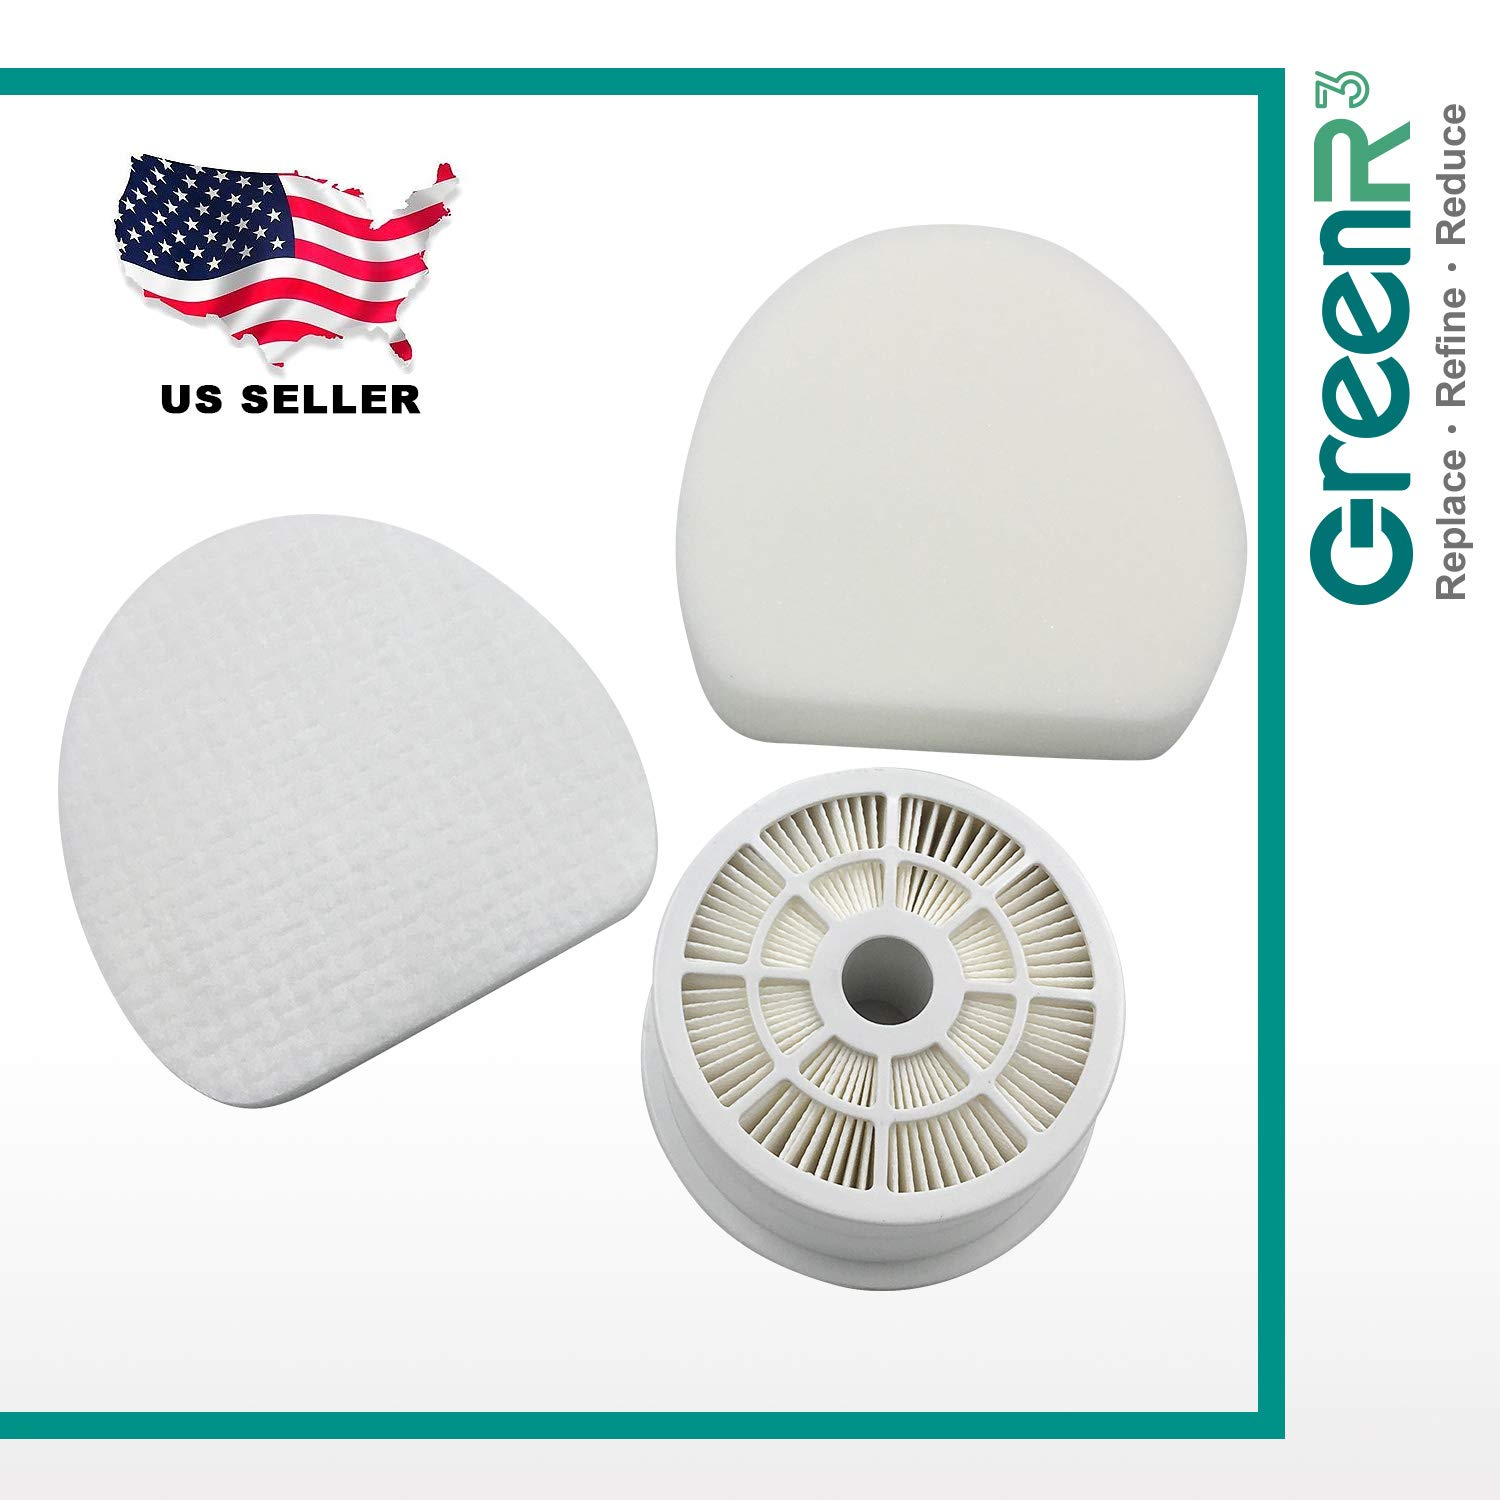 GreenR3 1-Pack HEPA Air Filter Set Replaces Shark Part# XHF400 and XFF400 for Shark NV400 NV401 NV402. Includes 1 x HEPA Filter + 1 x Foam Pre-Filter SHARK XHF400+XFF400